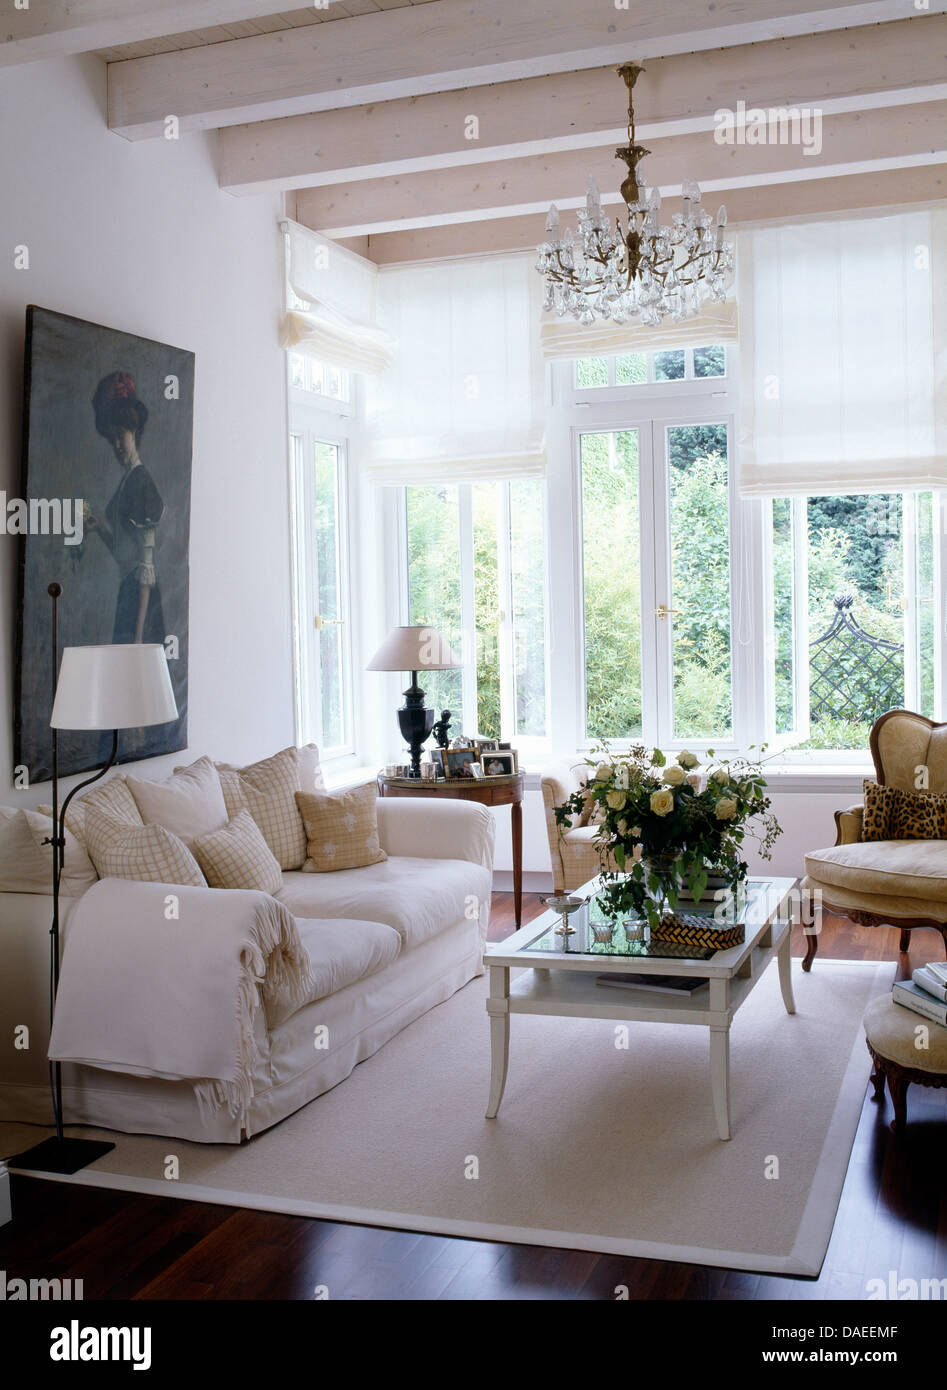 Coffee Table On White Rug In Front Of Sofa Country Living Room With Lime Washed Ceiling Beams